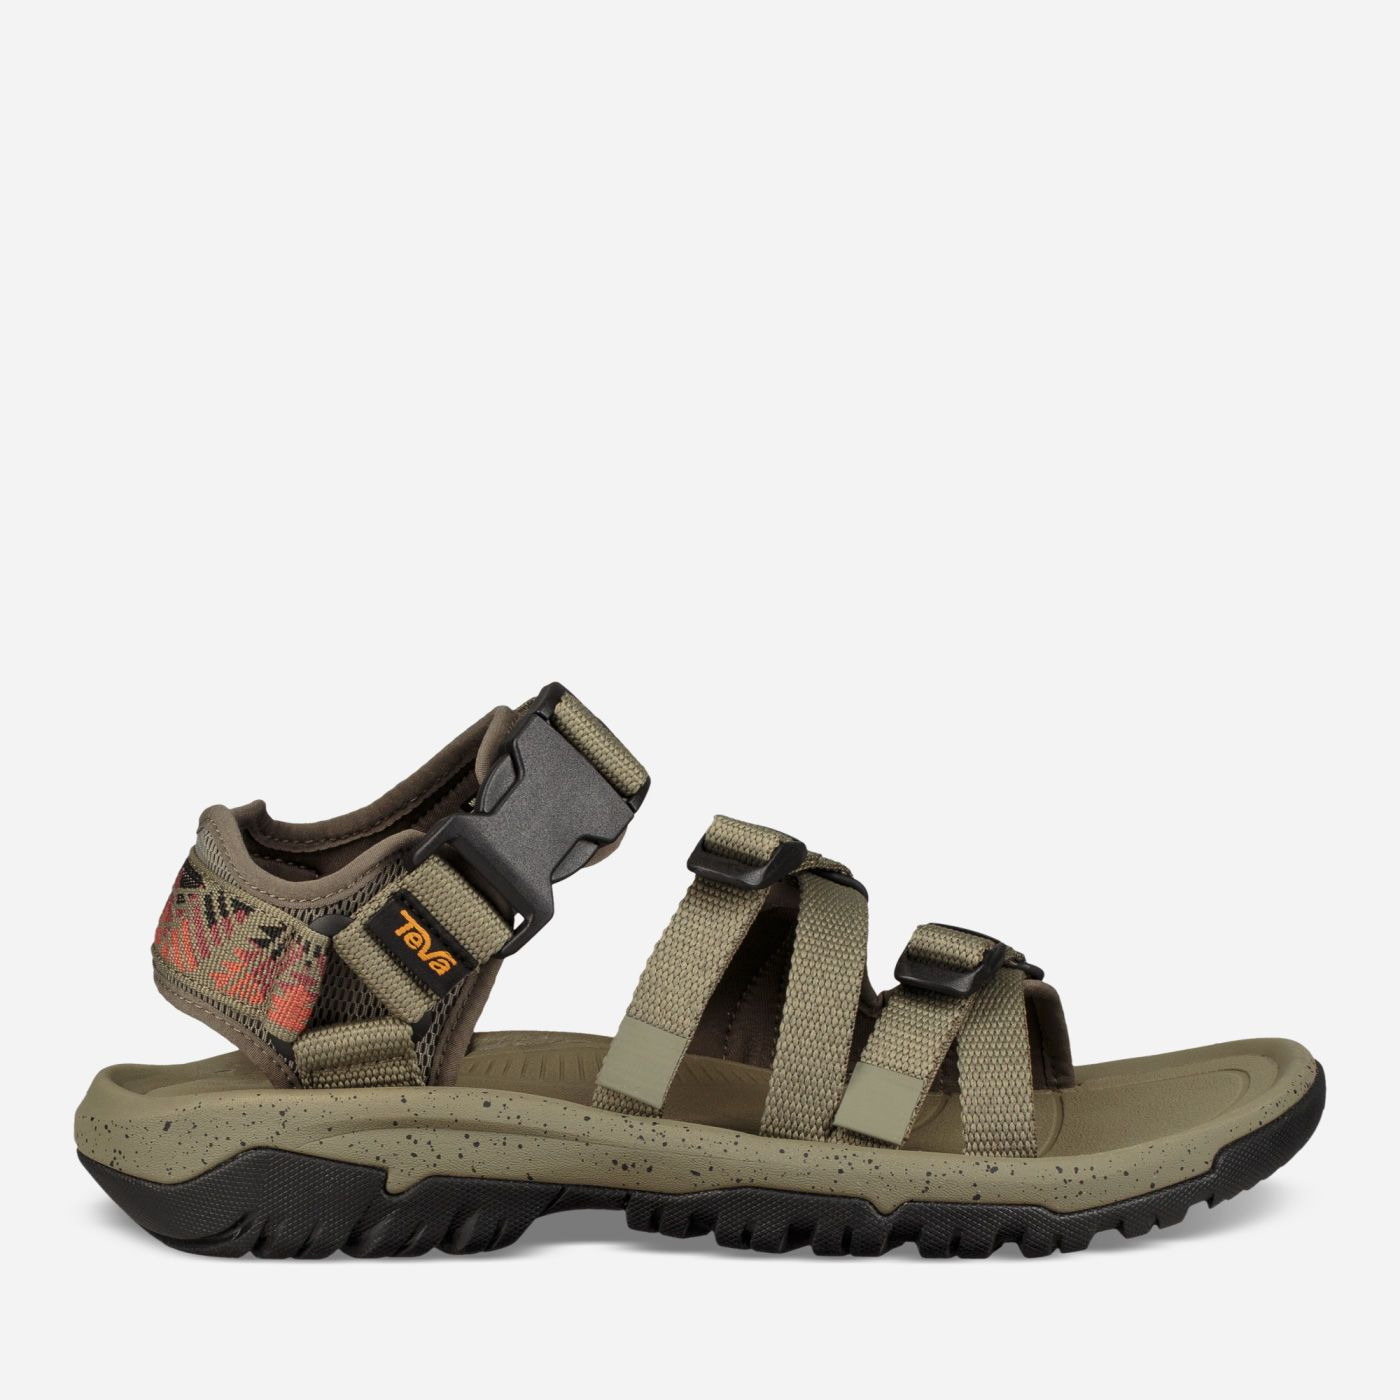 Teva Men S Hurricane Xlt2 Alp Sandals In Black Olive Size Sandals Soft Heels Mens Sandals